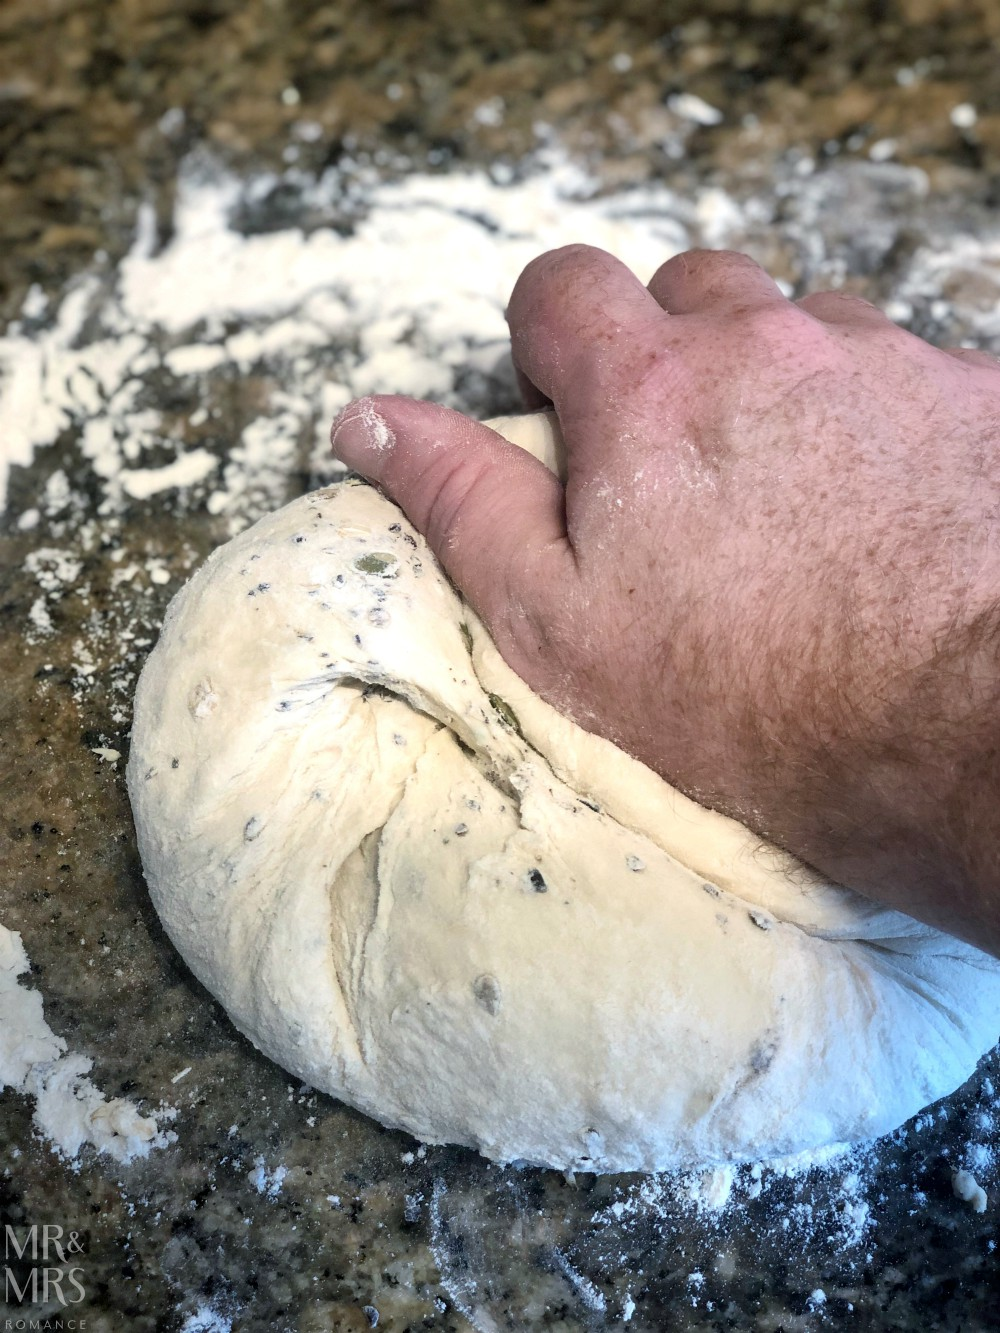 Home-made bread recipe - kneading dough